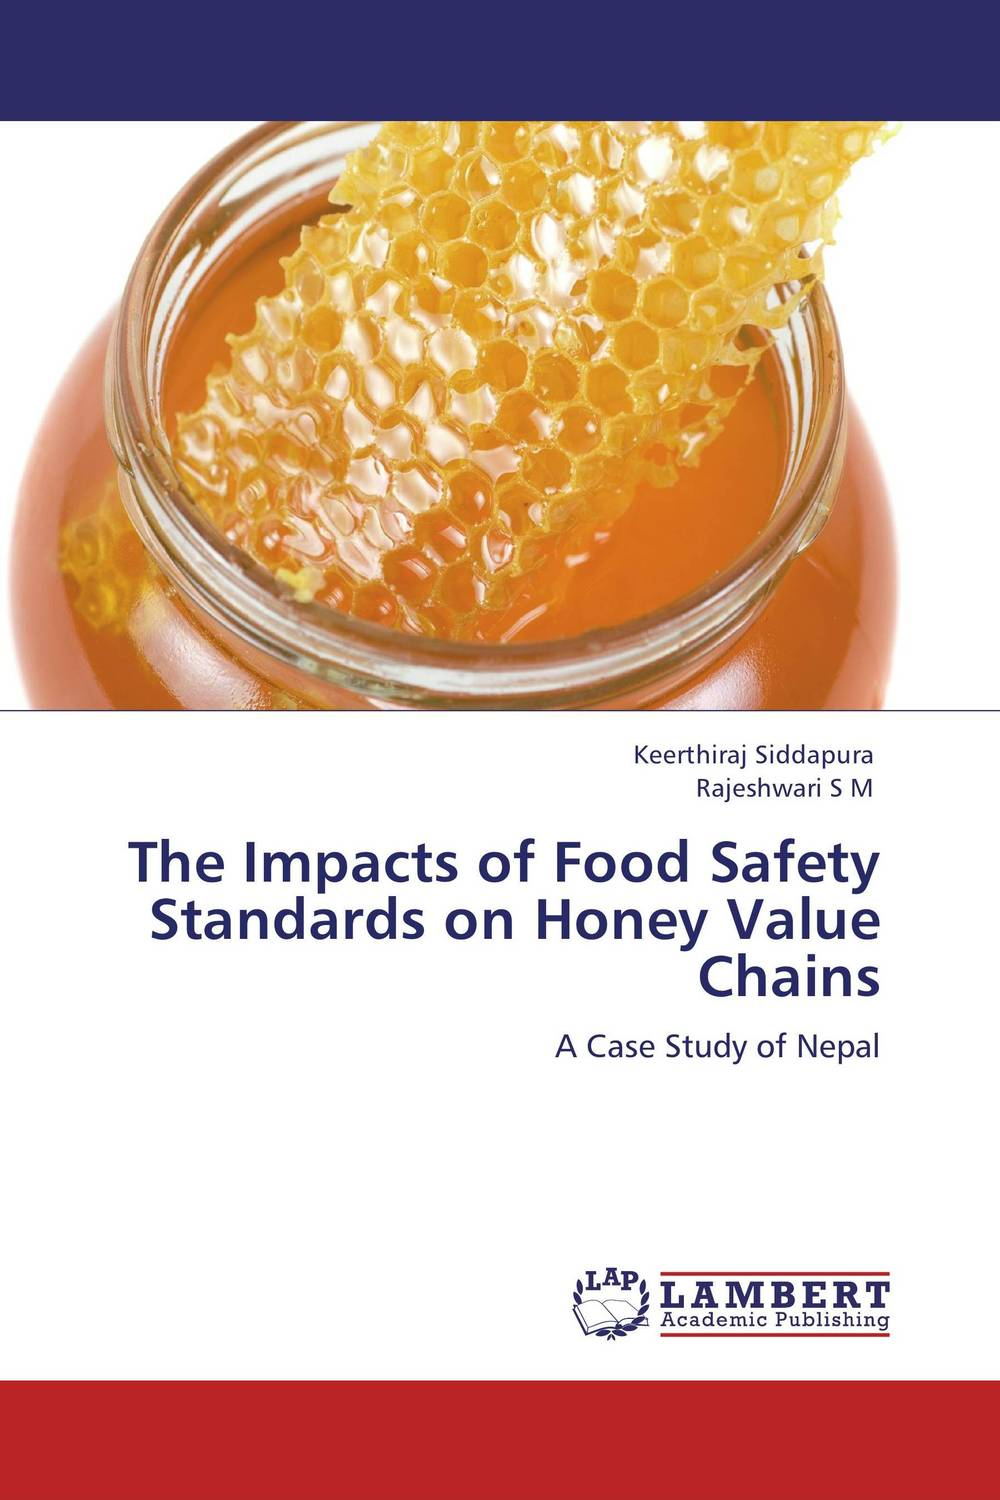 The Impacts of Food Safety Standards on Honey Value Chains honey value chain analysis